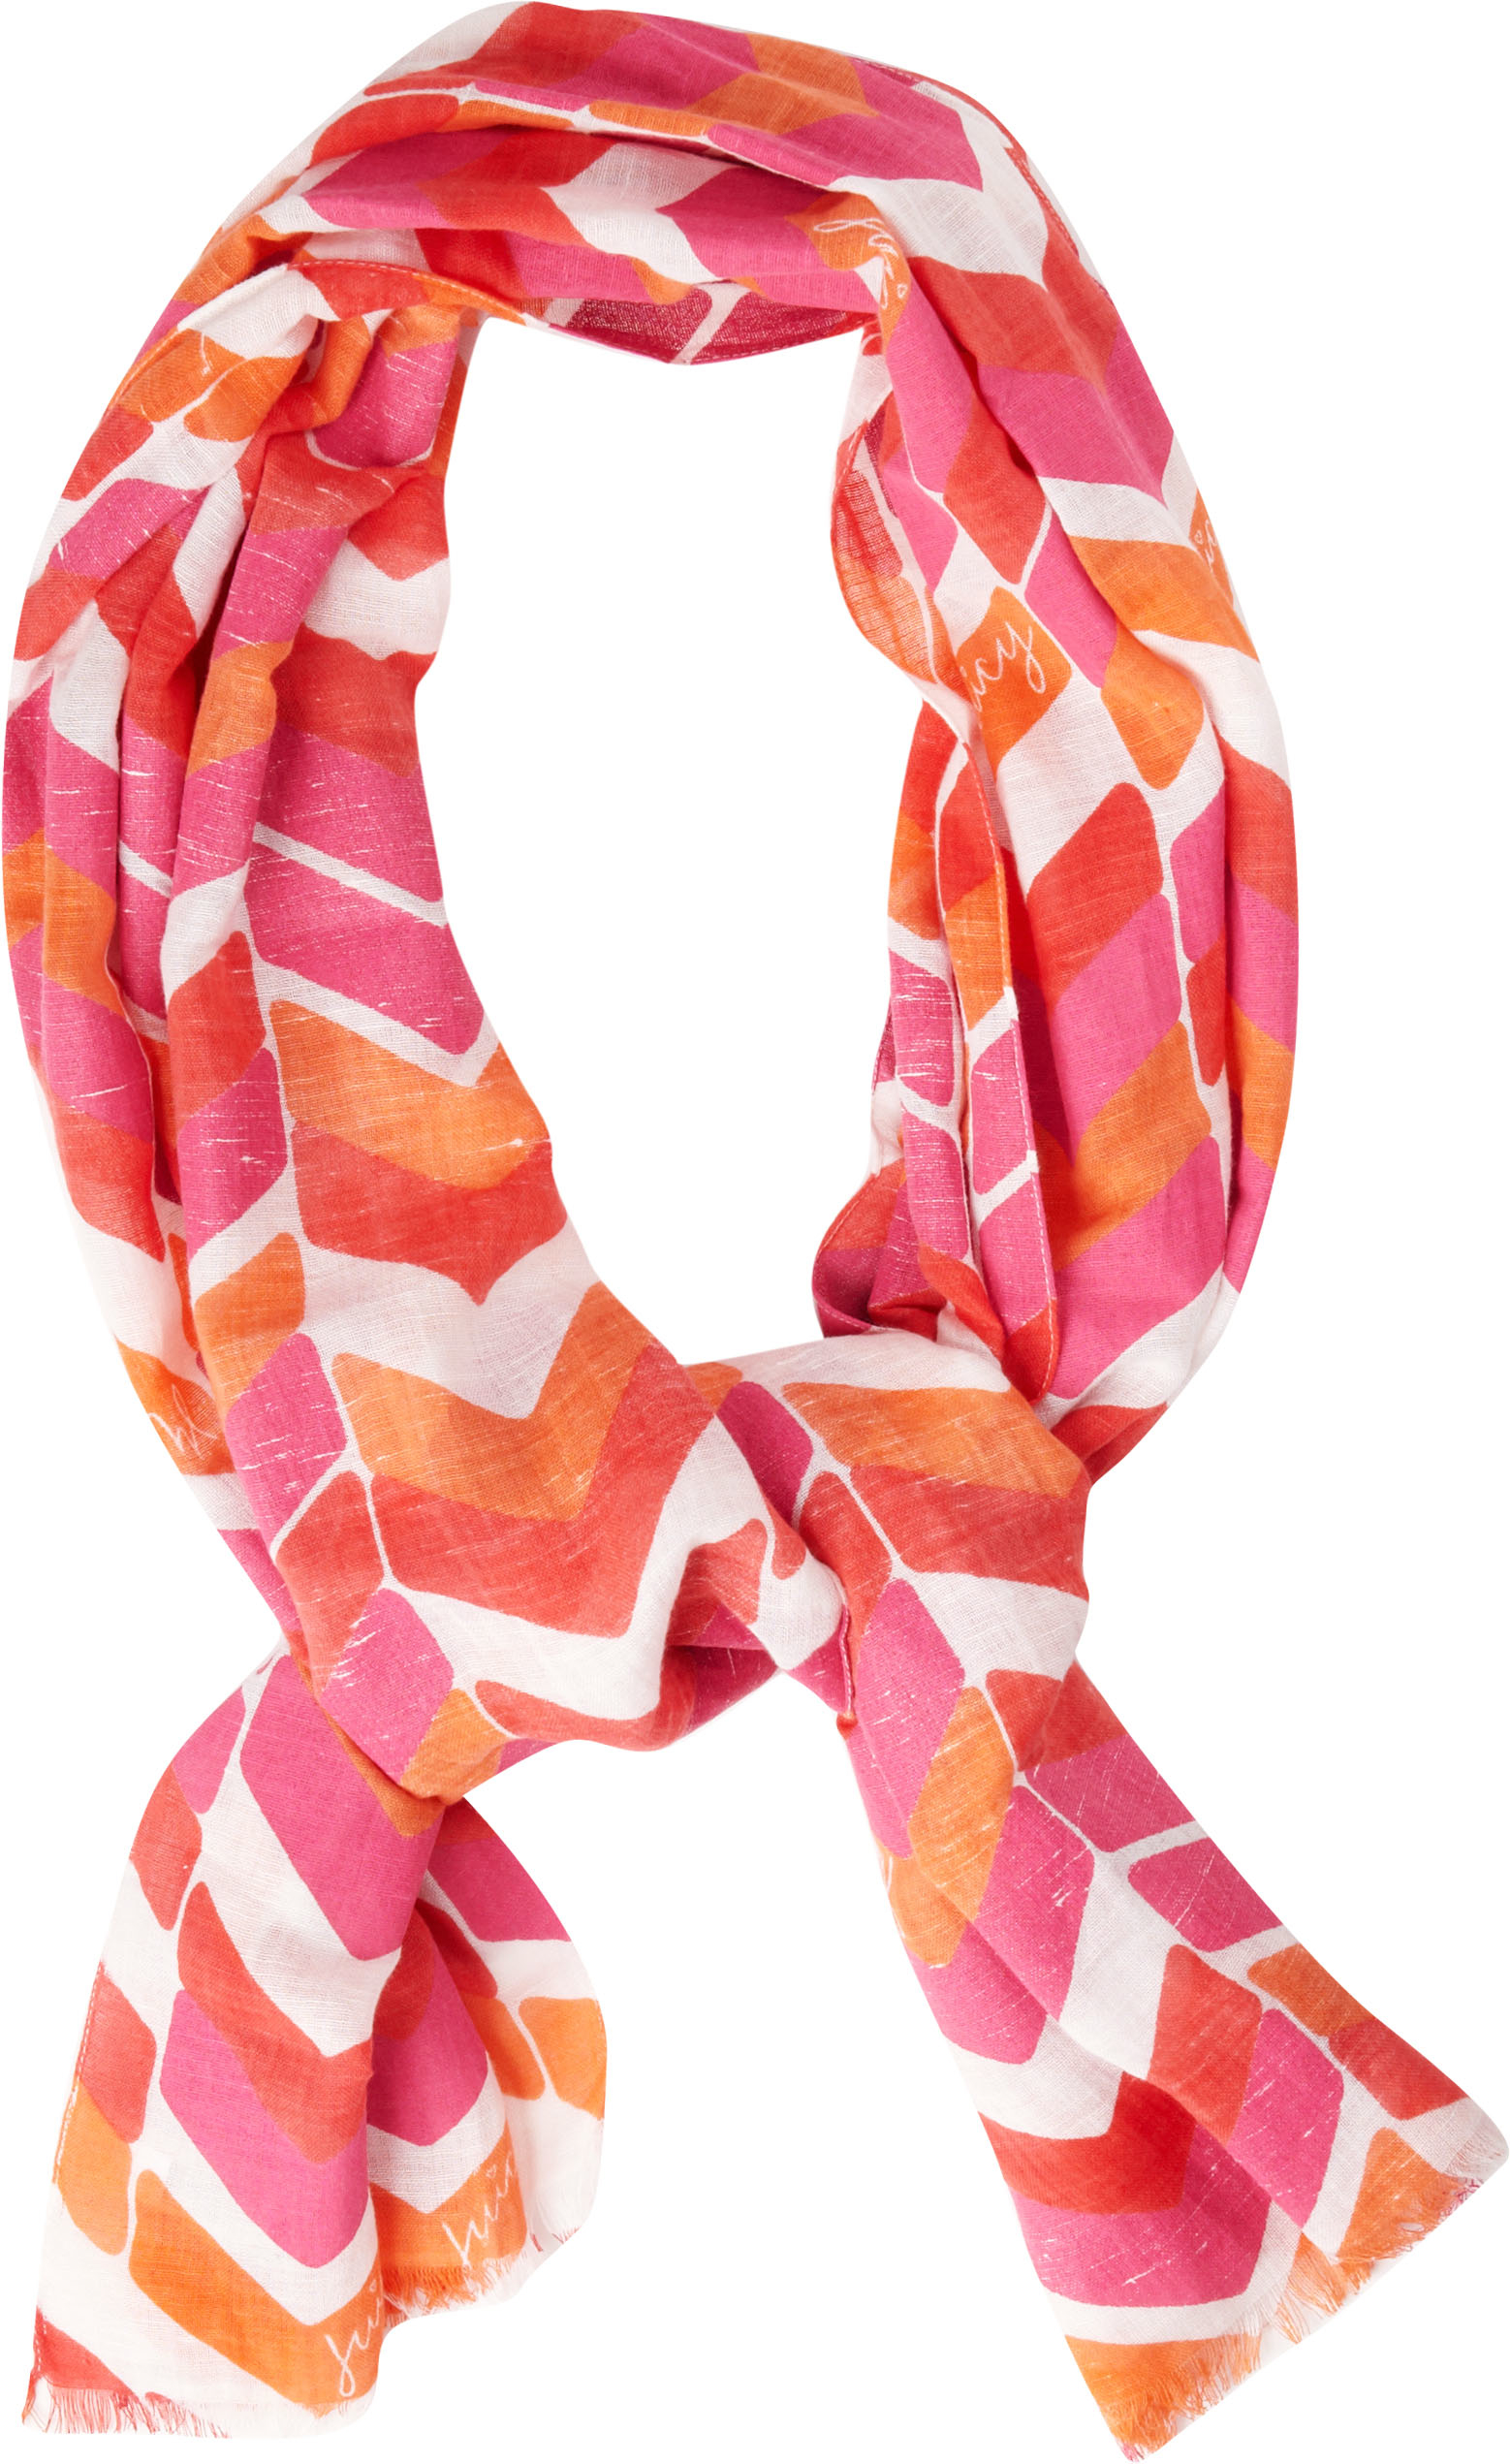 Chevron stripes are very trendy and very cute, especially on this scarf!